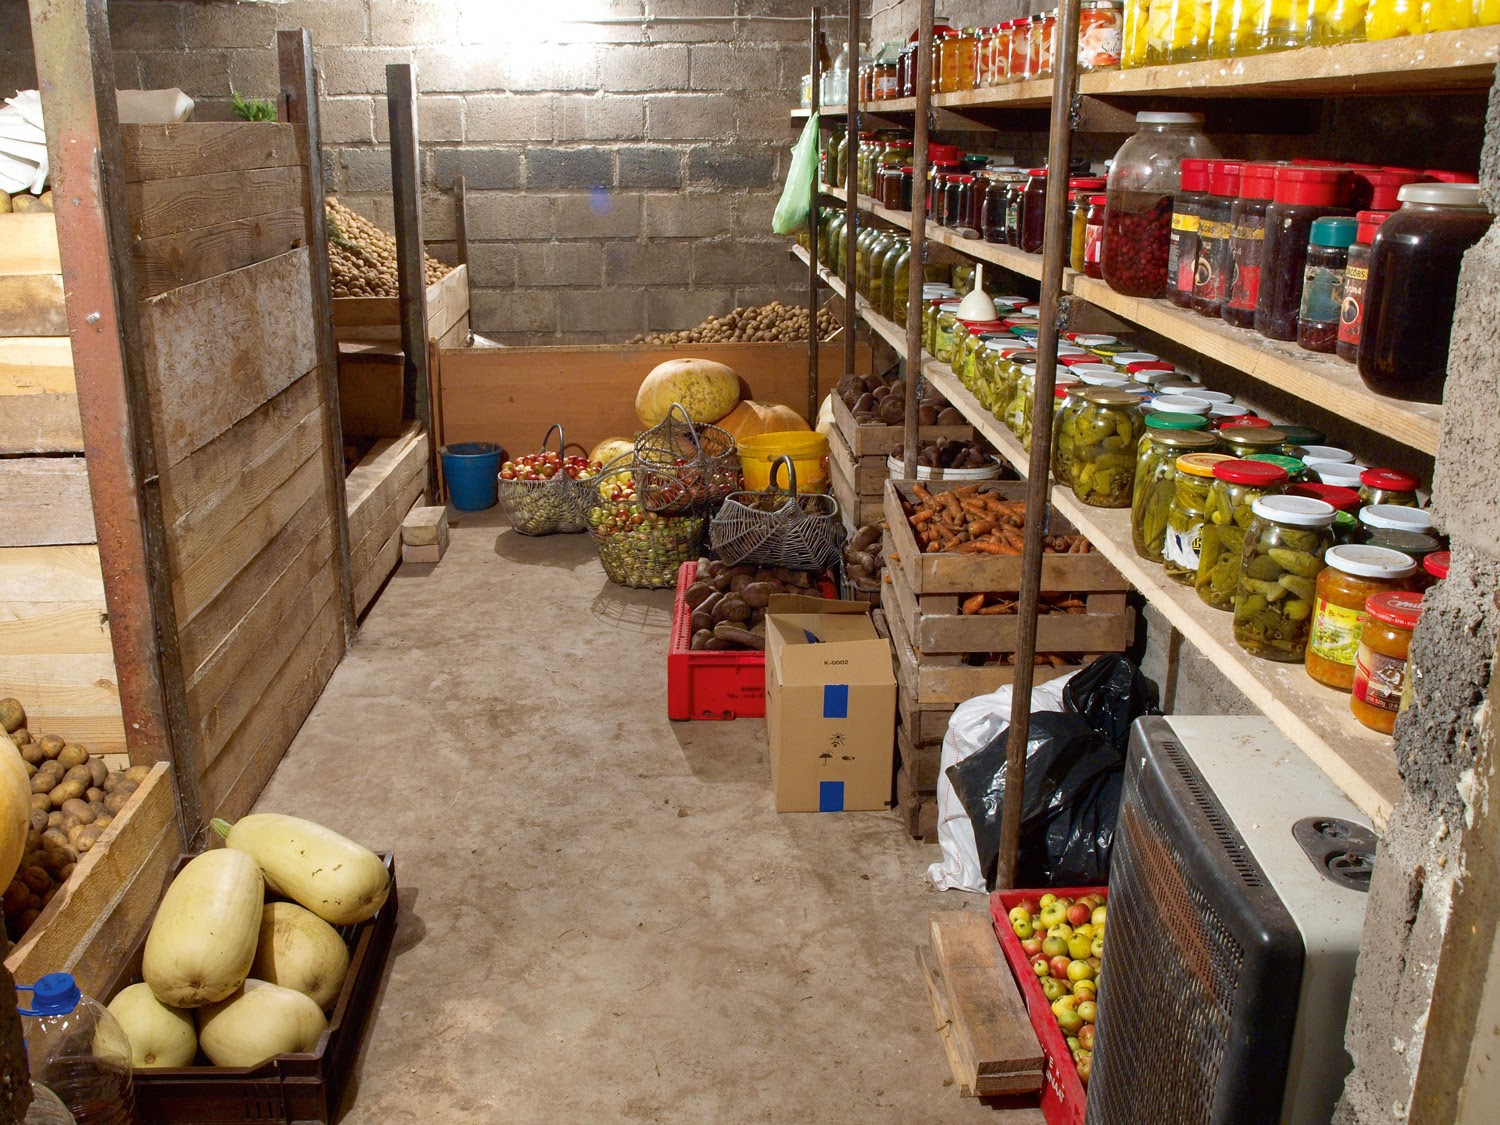 Delicious, equipped basement